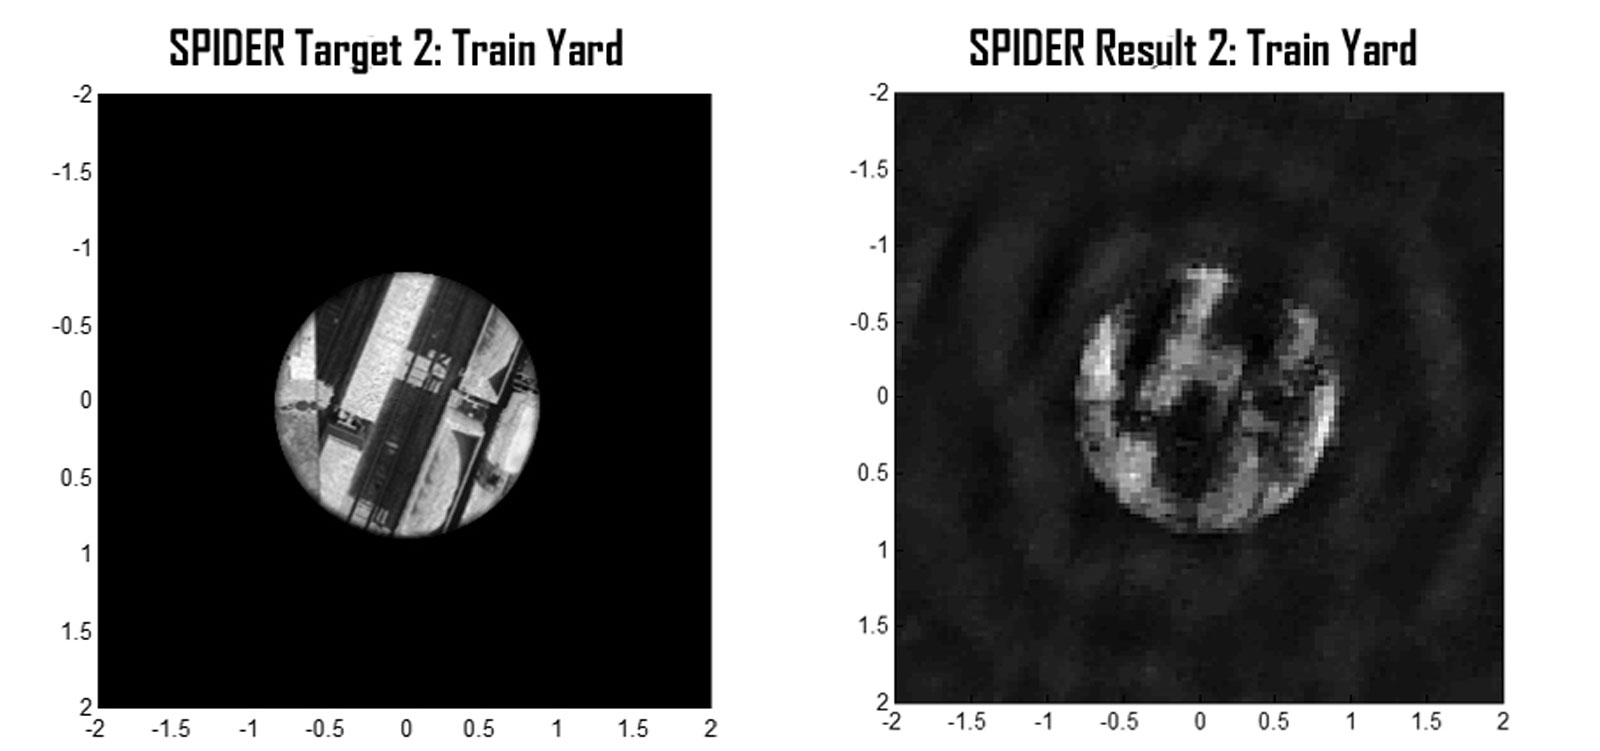 Lockheed Martin's SPIDER image samples